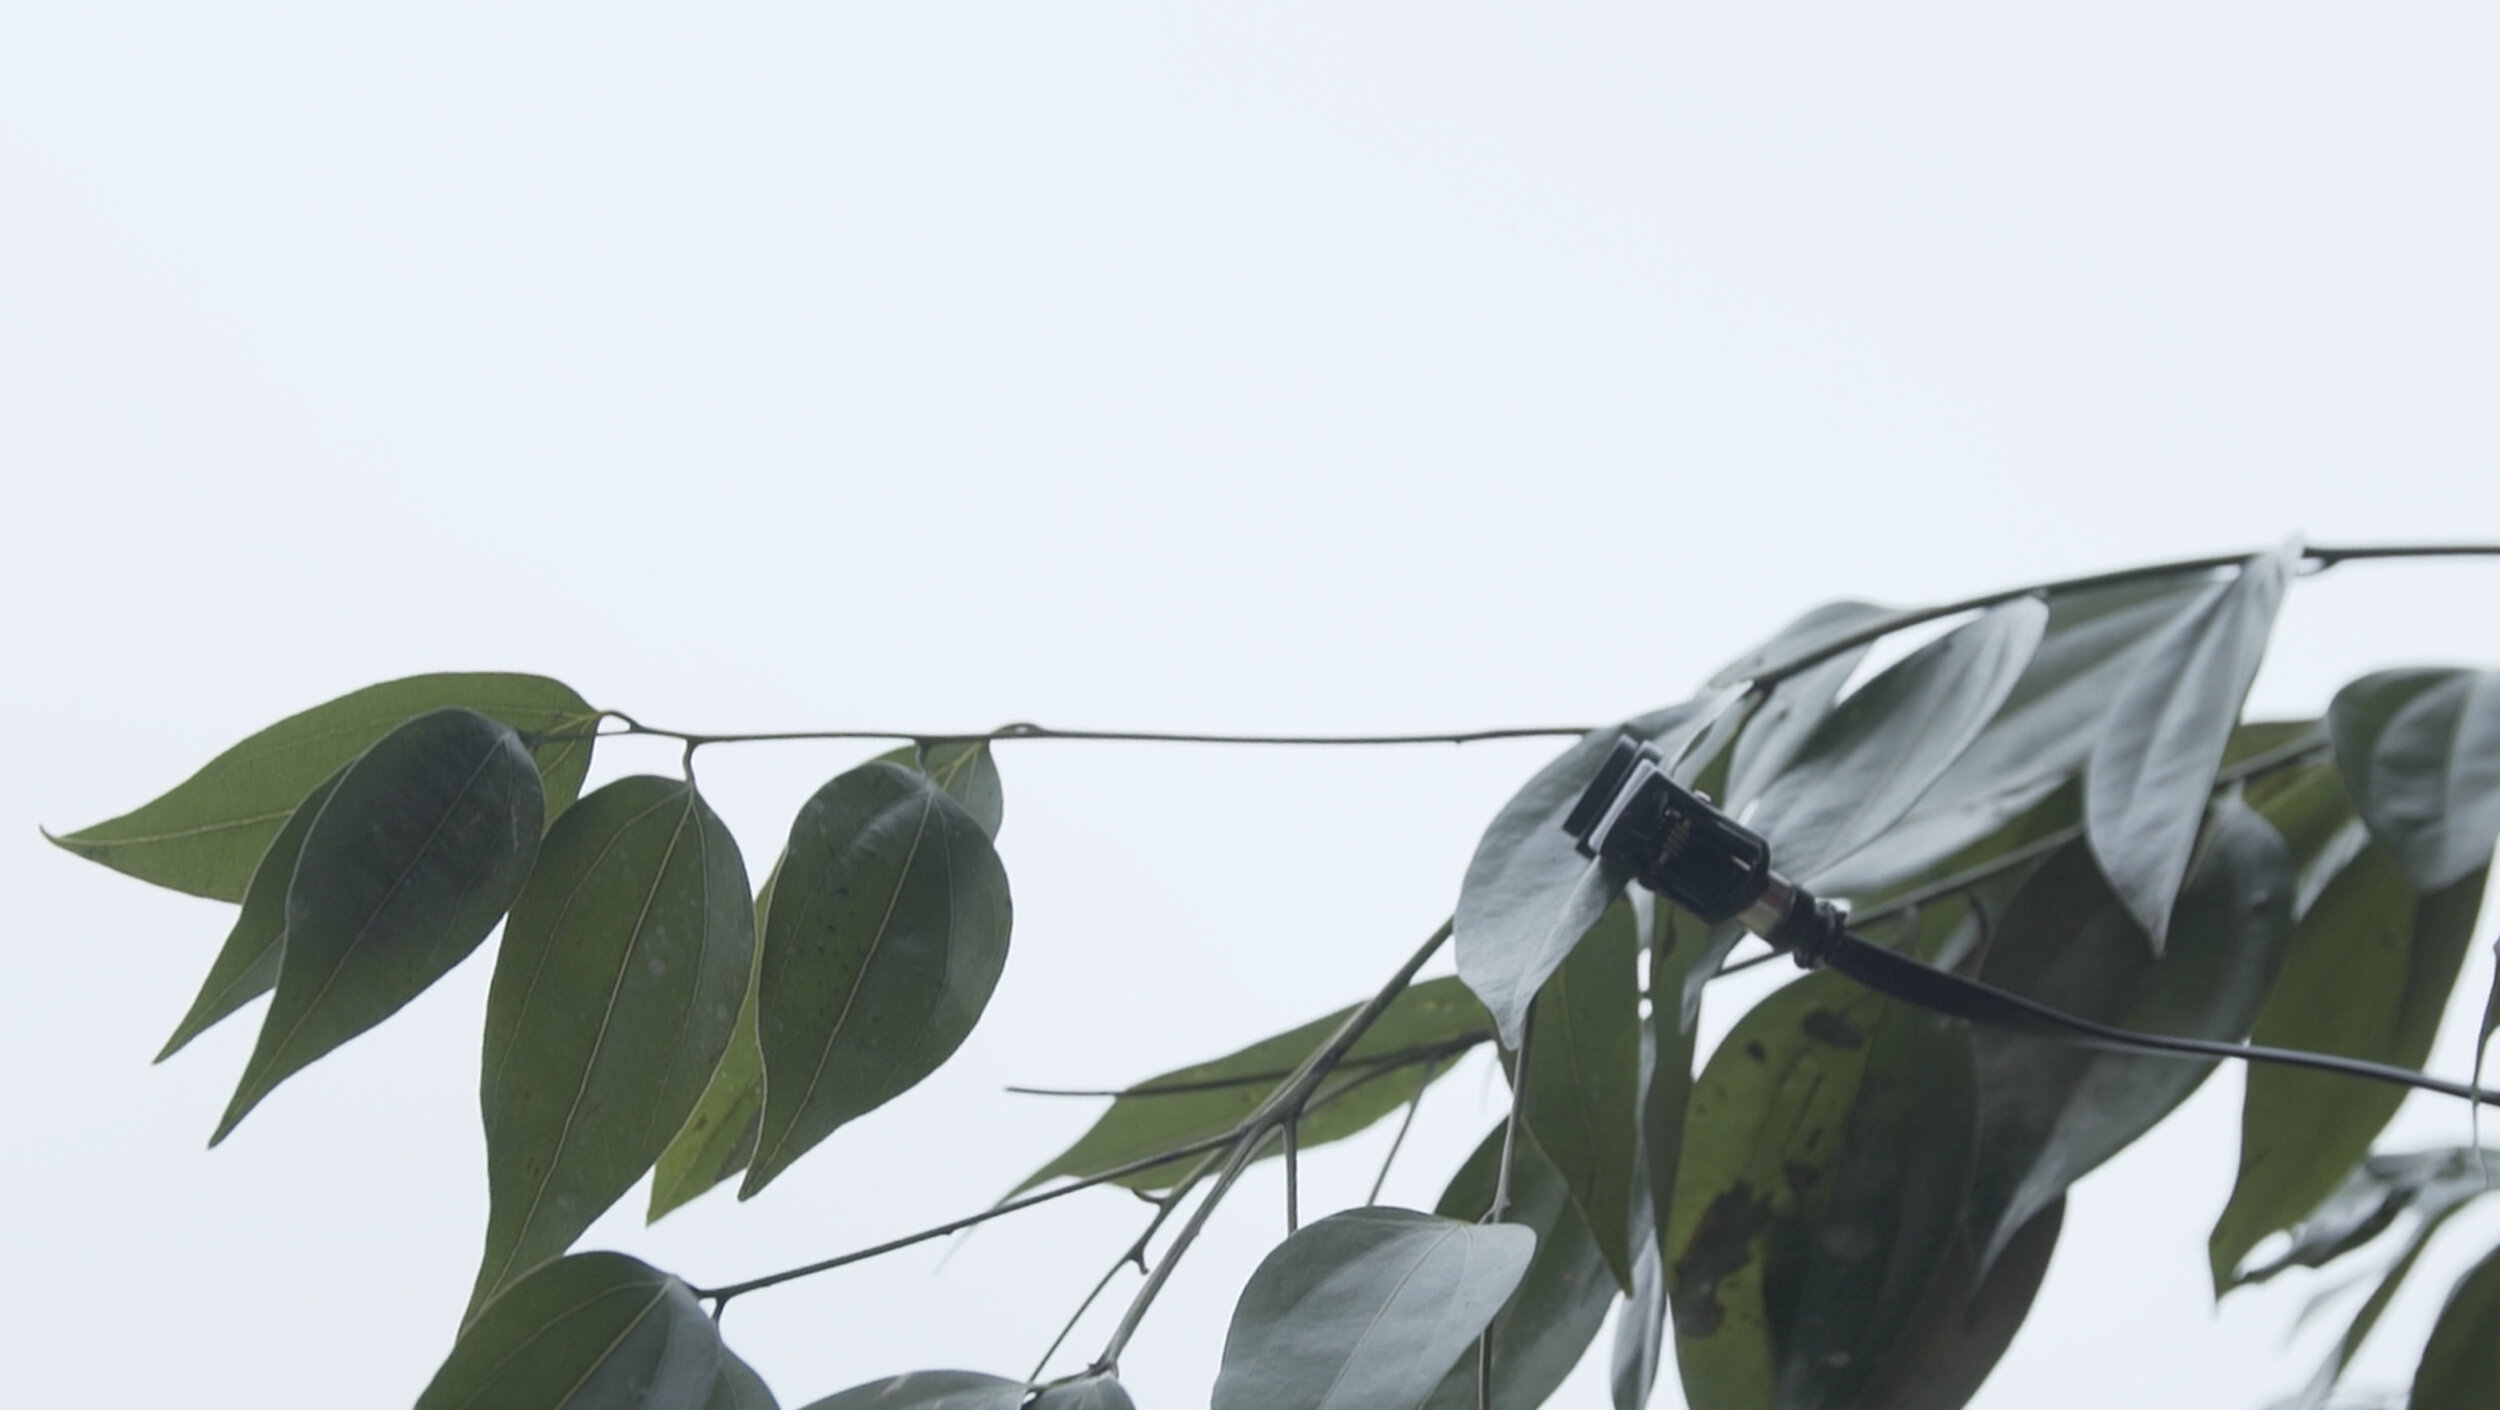 - By connecting 12 sensors to a living tree in one of the most polluted cities in the world; Chengdu, China,